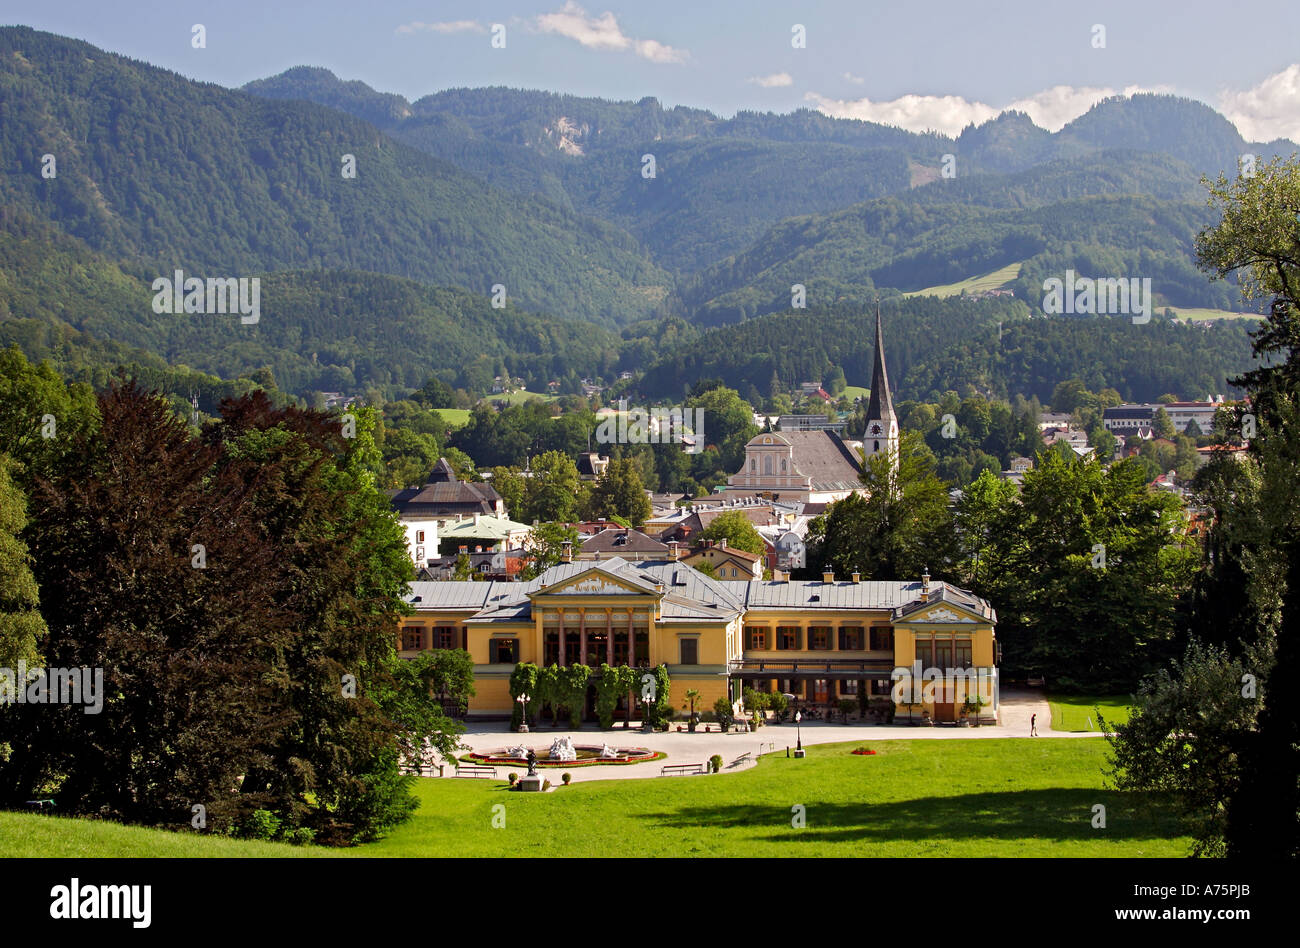 bad ischl sterreich bad ischl austria stock photo royalty free image 6704554 alamy. Black Bedroom Furniture Sets. Home Design Ideas